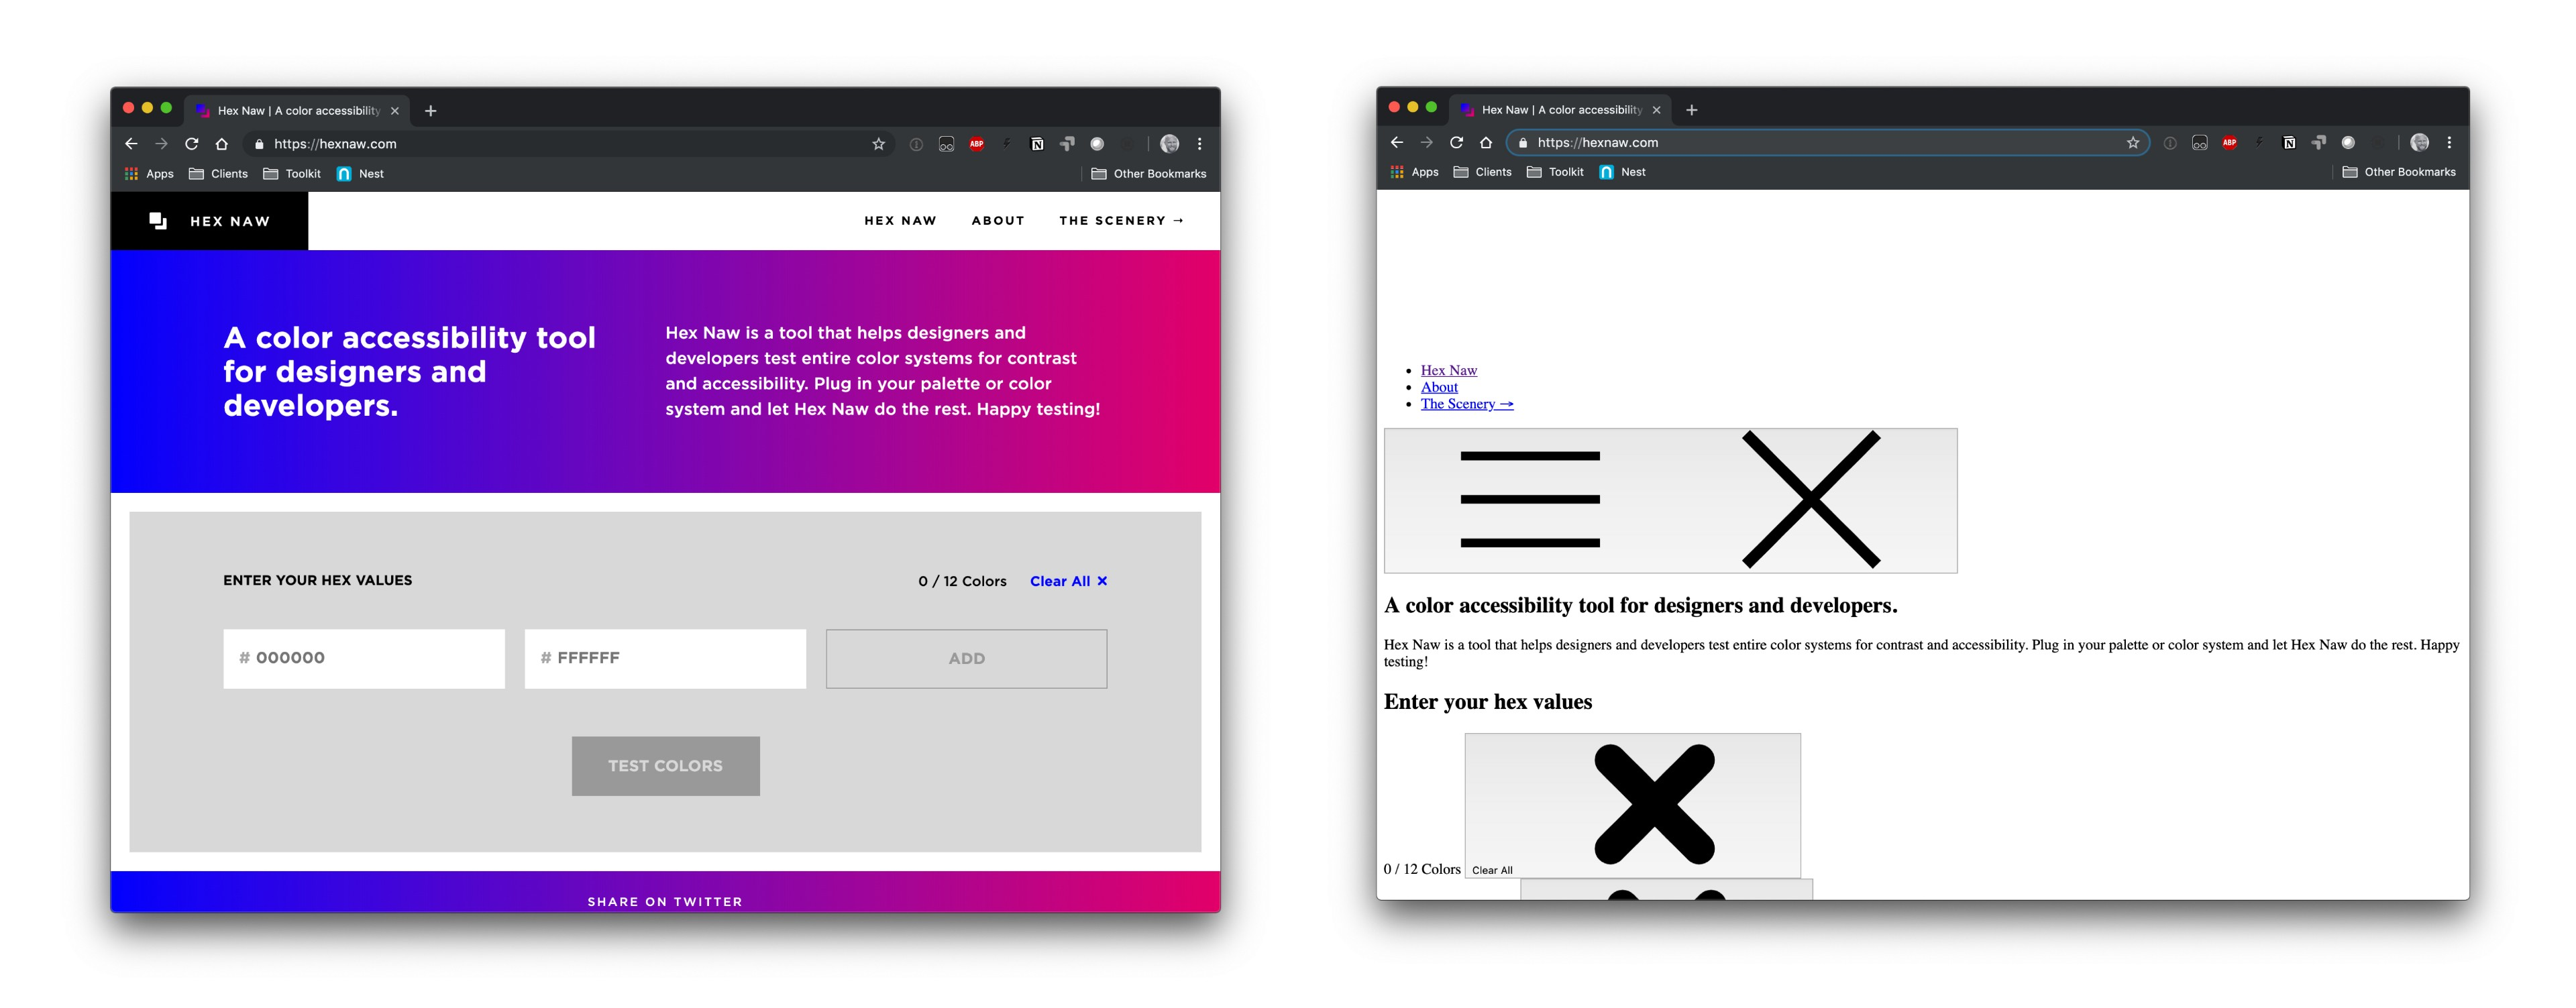 The Hex Naw tool with and without CSS